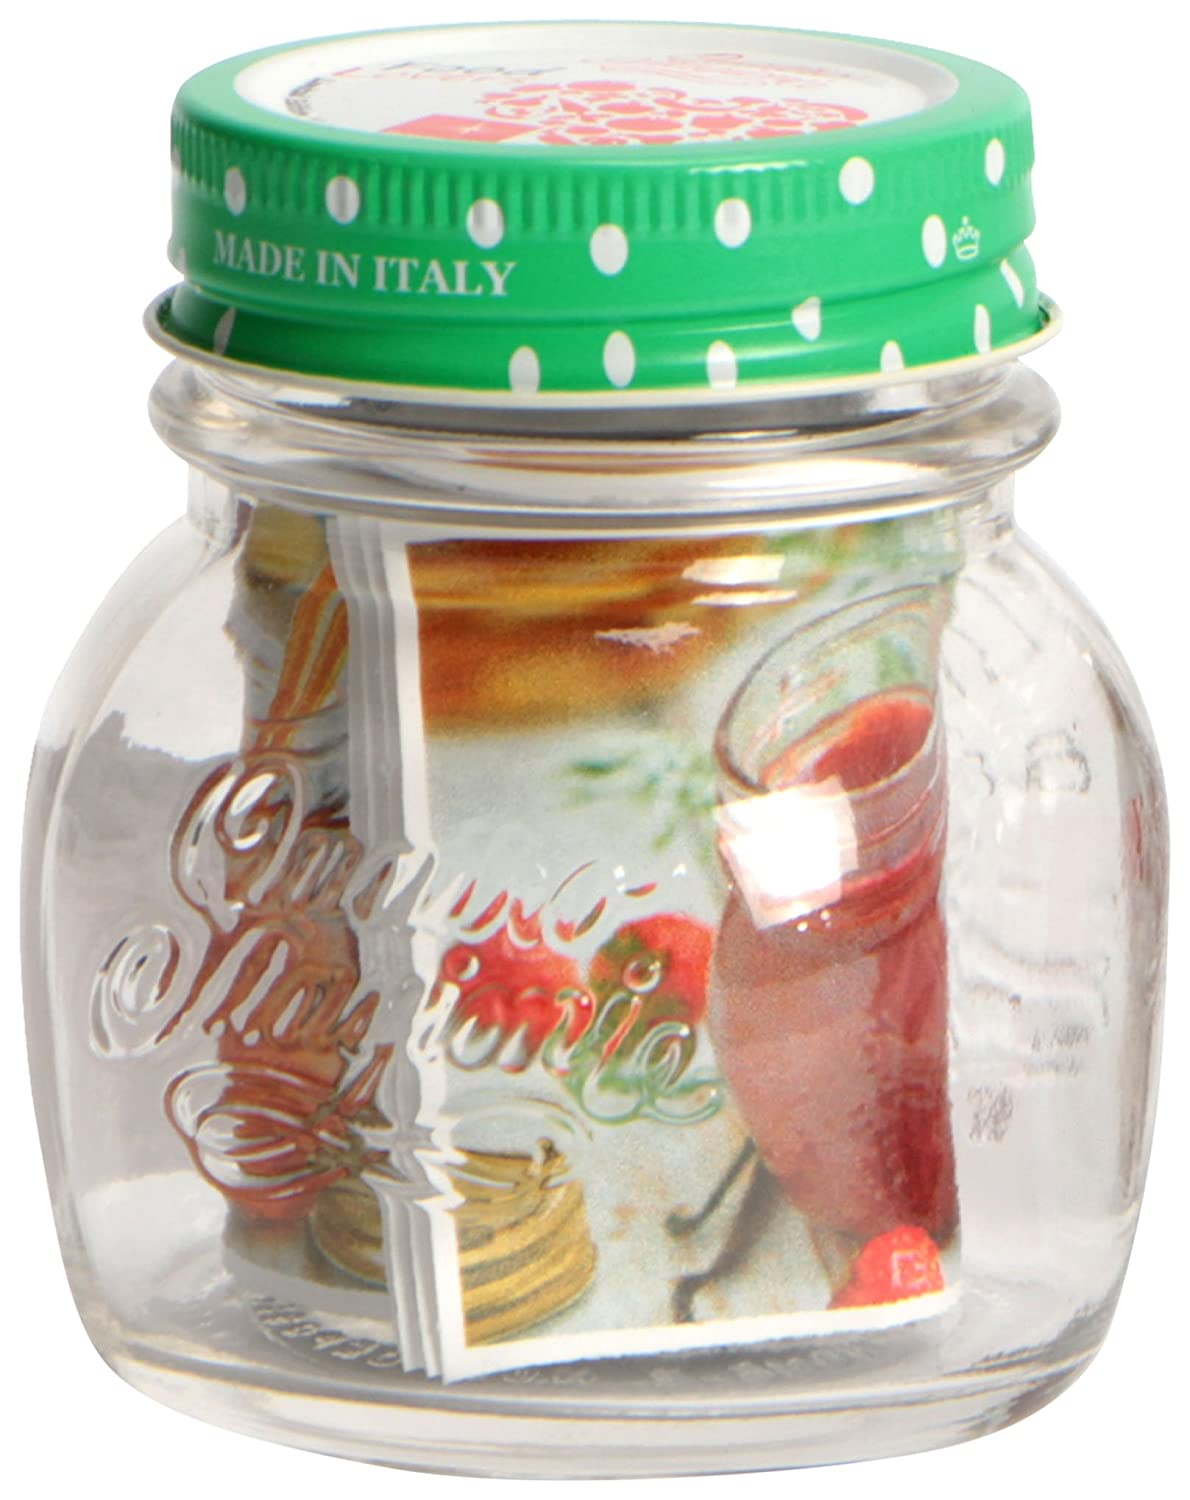 Bormioli Rocco Food Lovers Four Seasons Vase with Lid Glass/Aluminium 7 x 7 x 9 cm Assorted Colours 8405